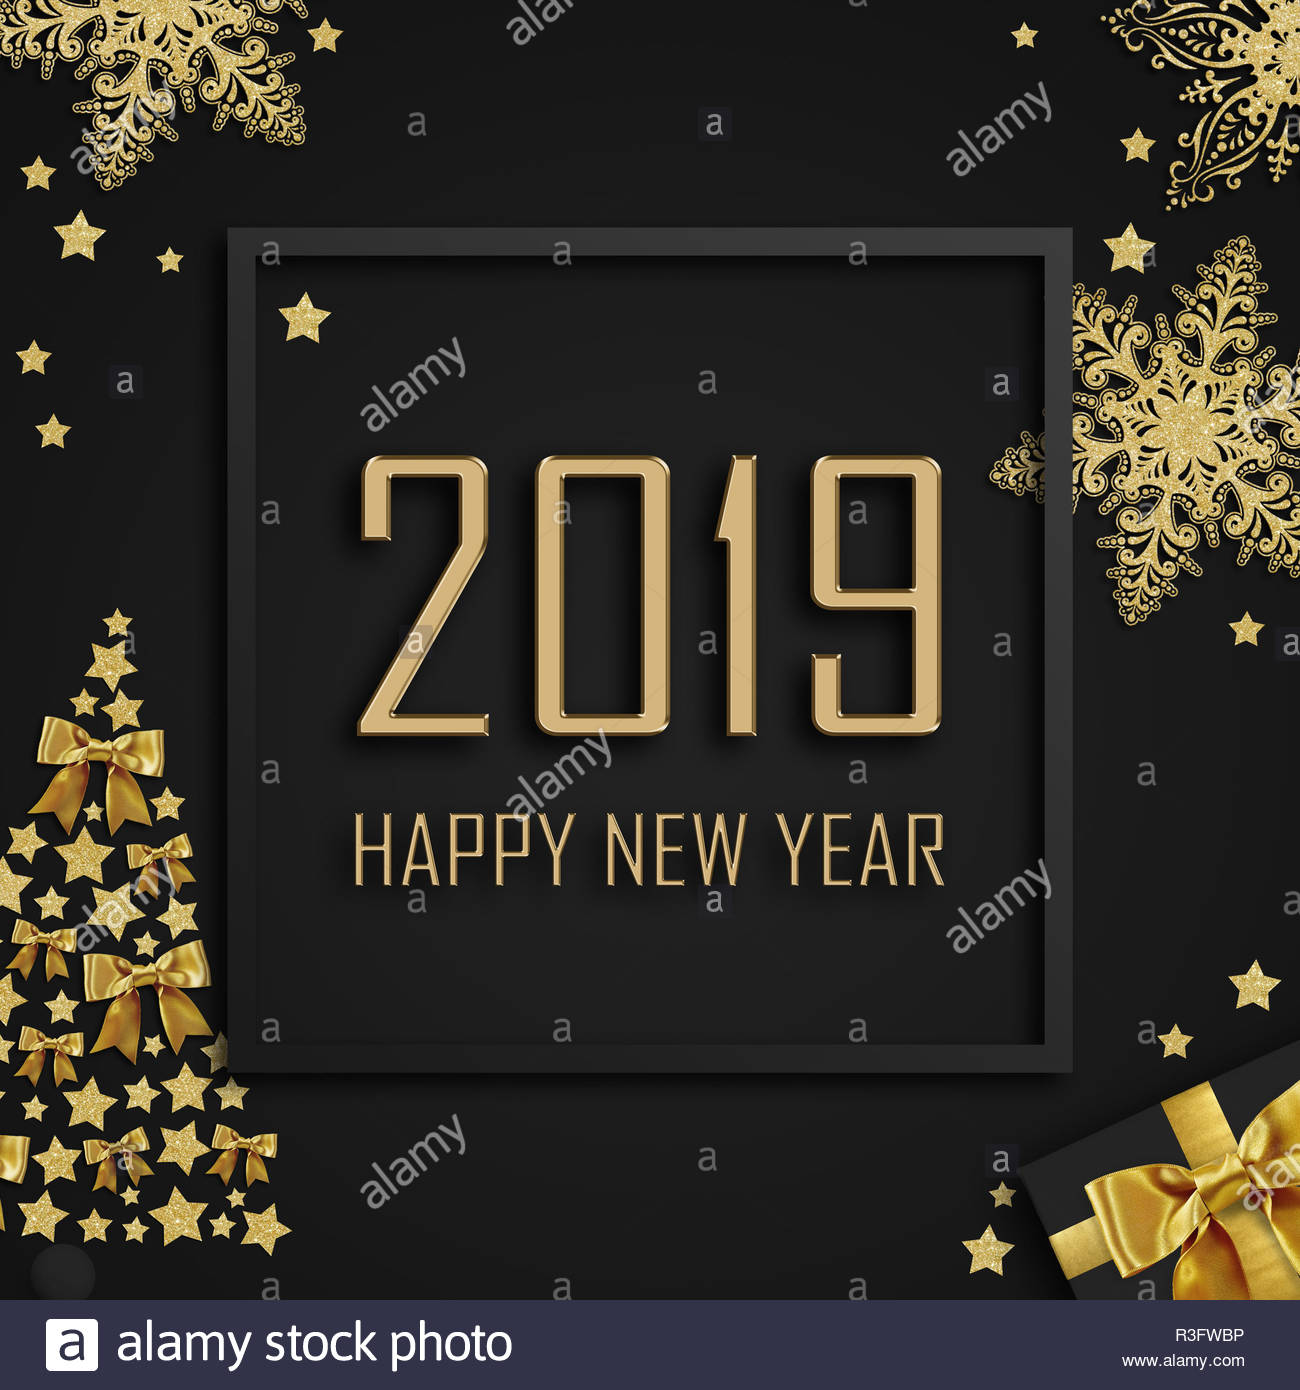 2019 happy new year lettering with frame golden stars present tree and snowflakes on dark background